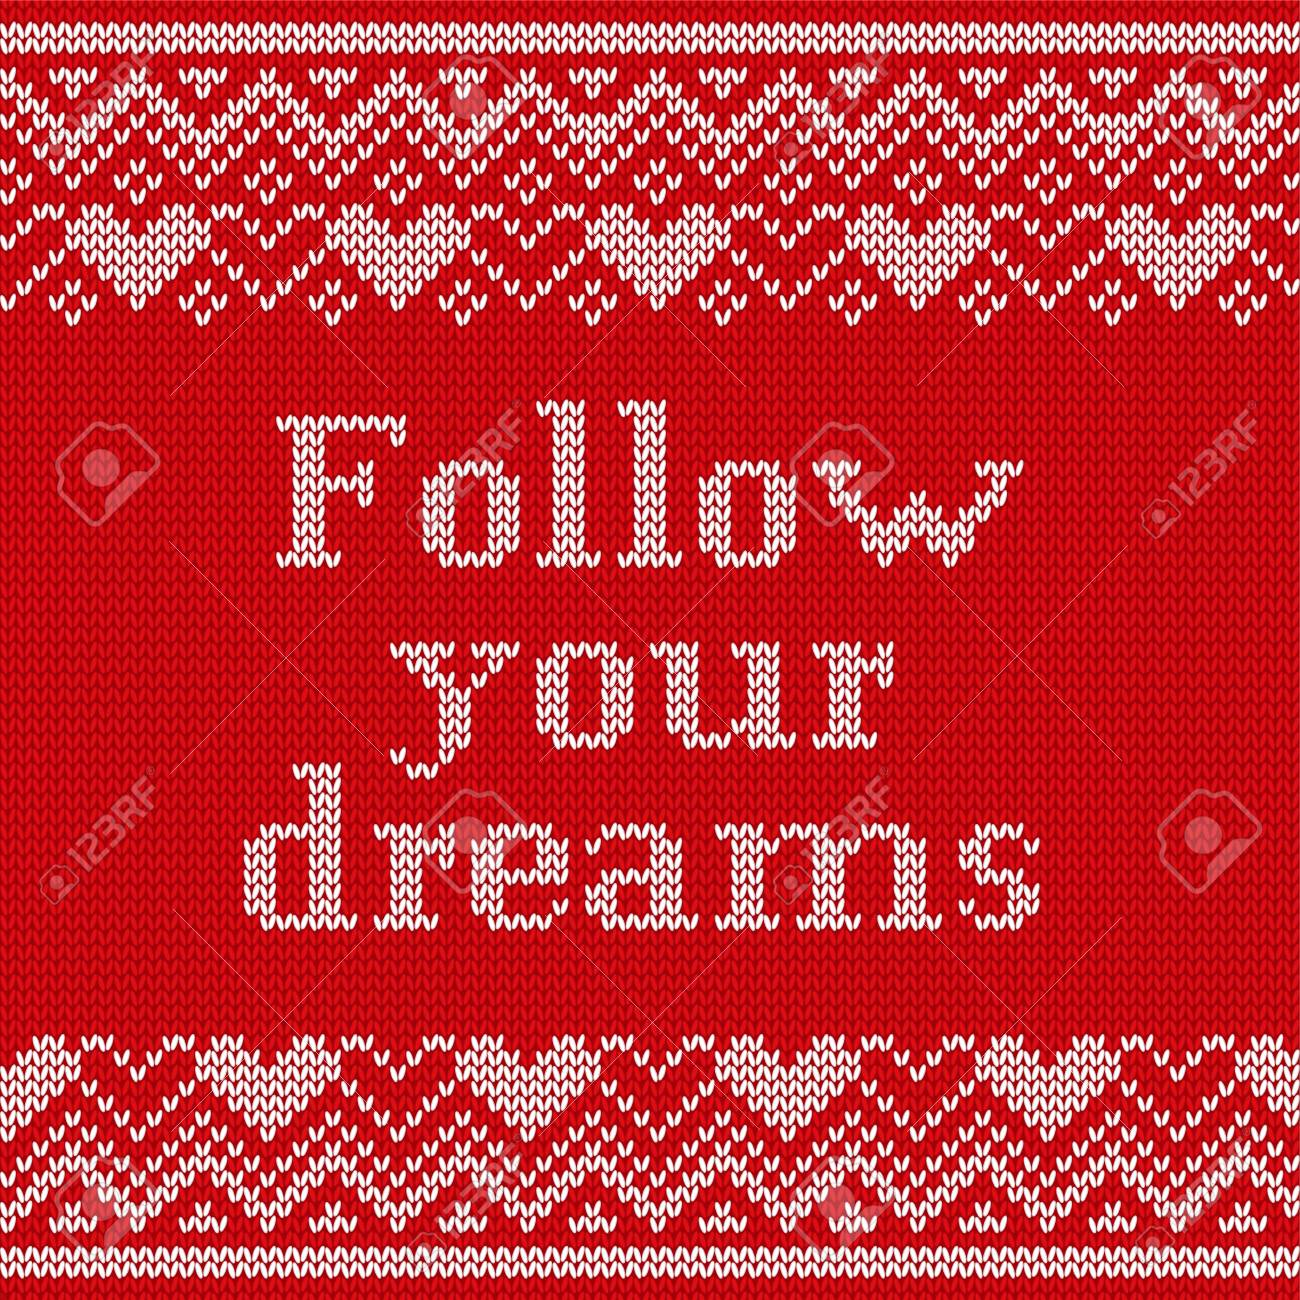 Knitting Pattern With Text Follow Your Dreams. Royalty Free Cliparts ...